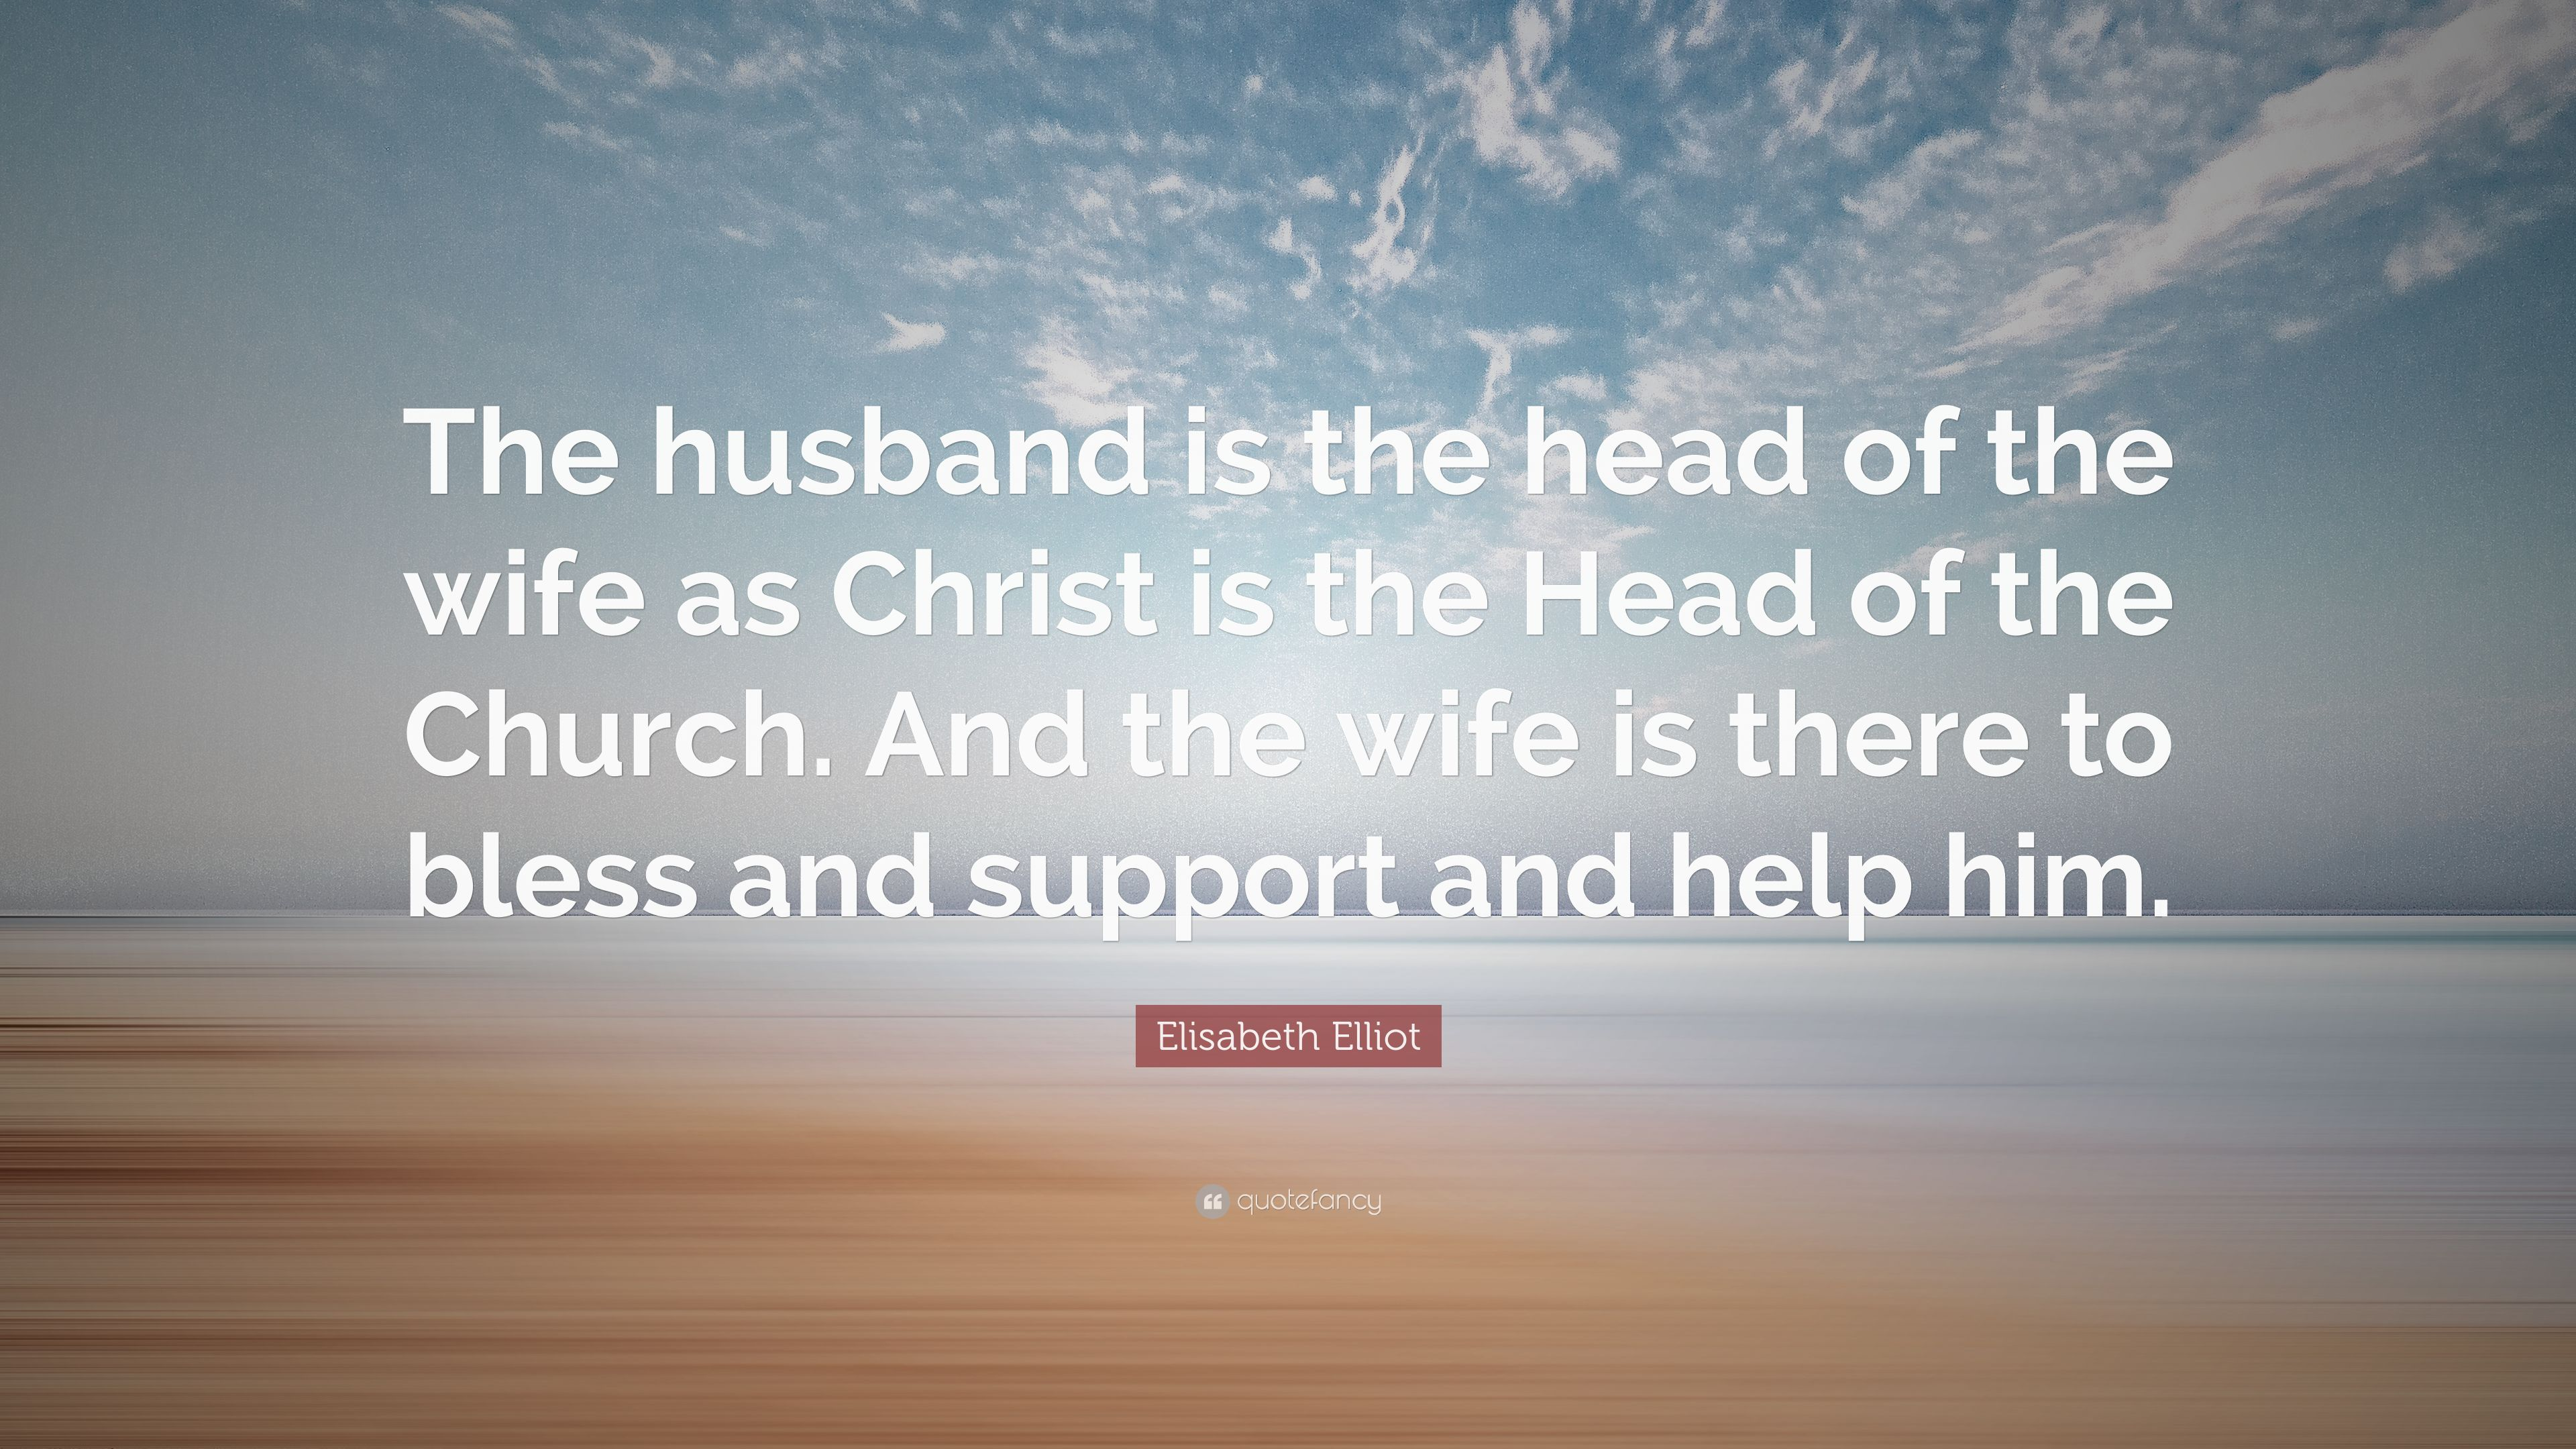 Elisabeth Elliot Quote: The husband is the head of the